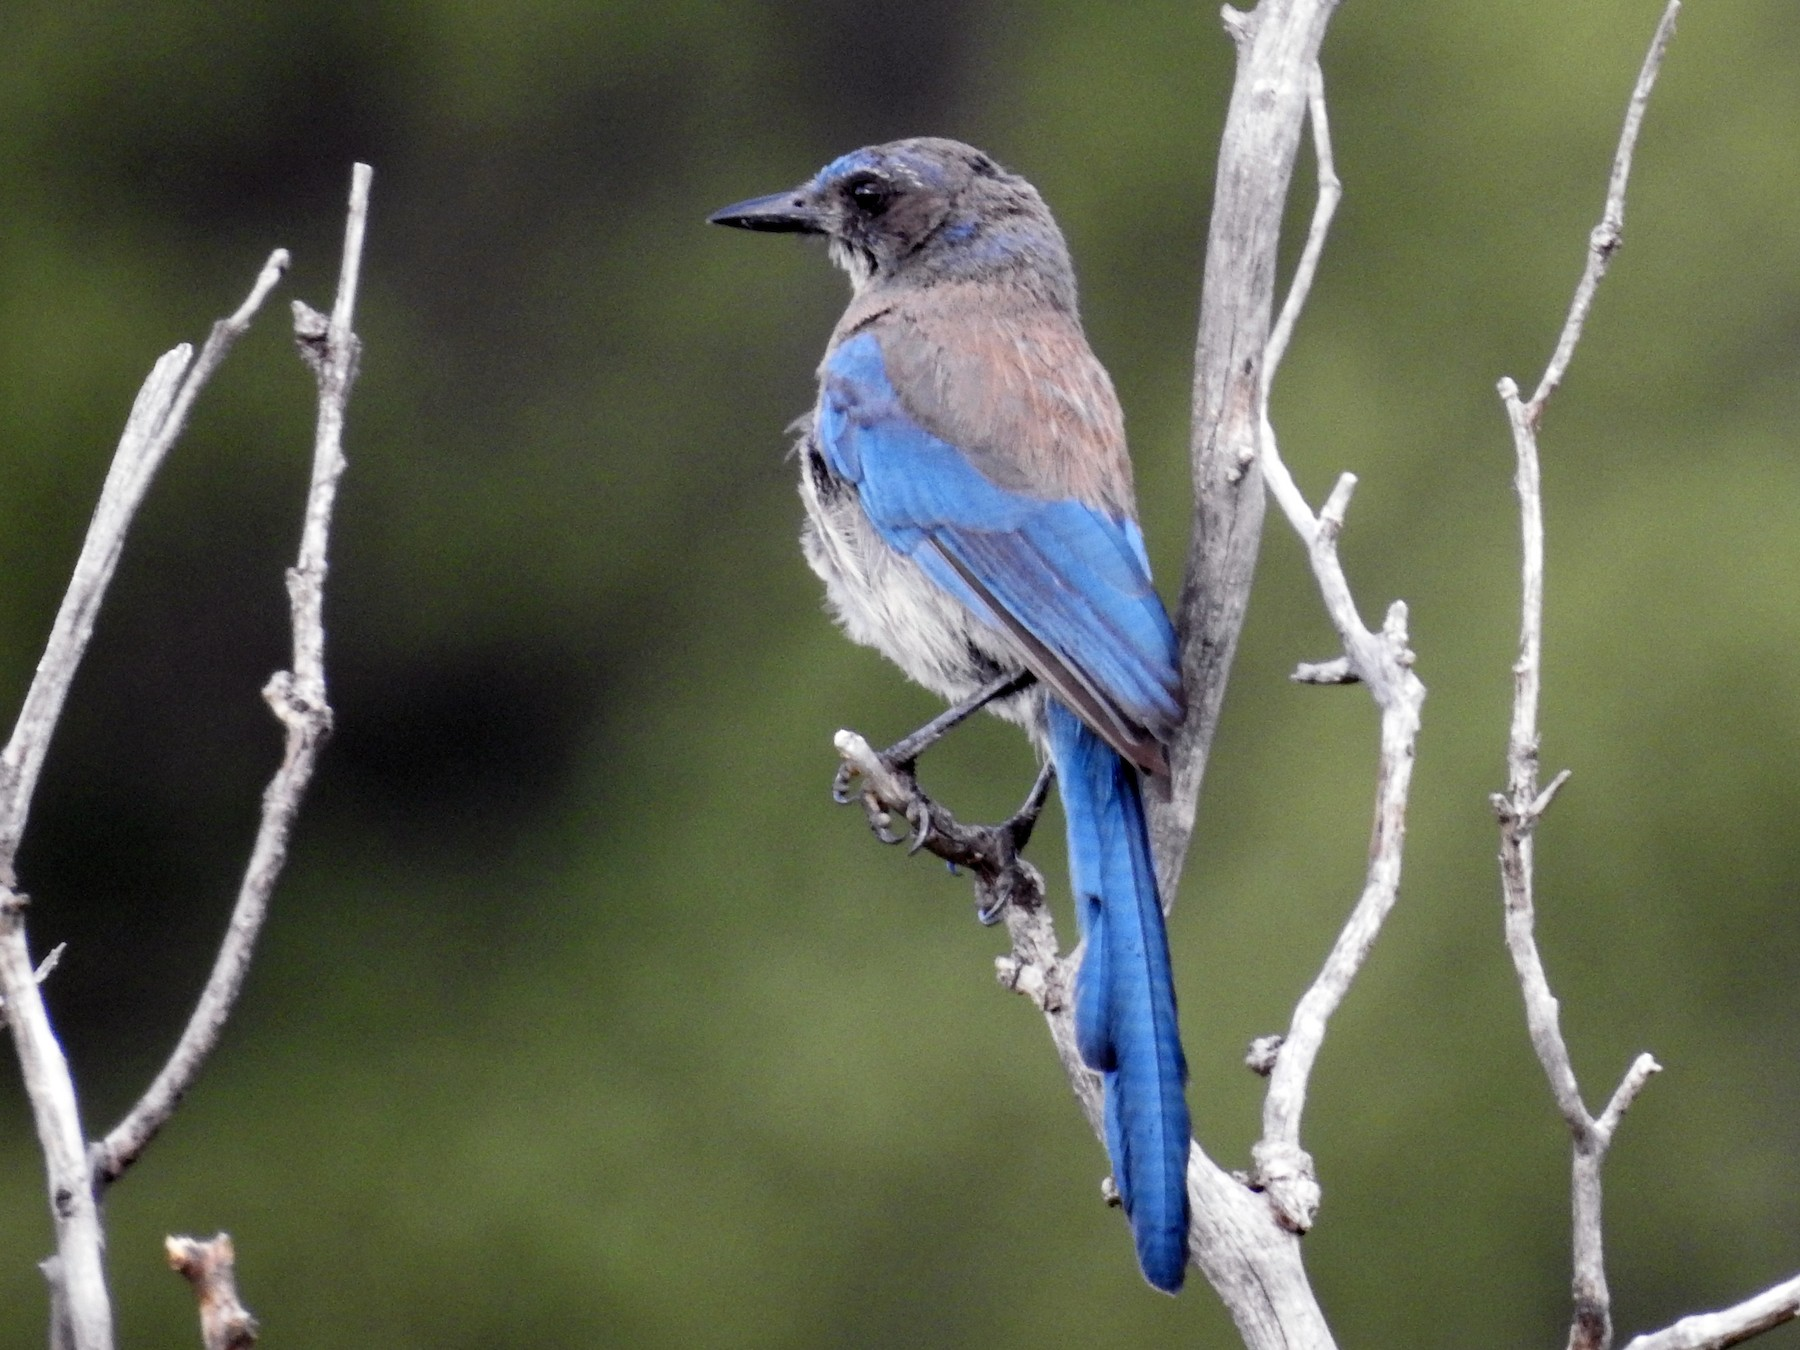 Woodhouse's Scrub-Jay - Alan Ketcham